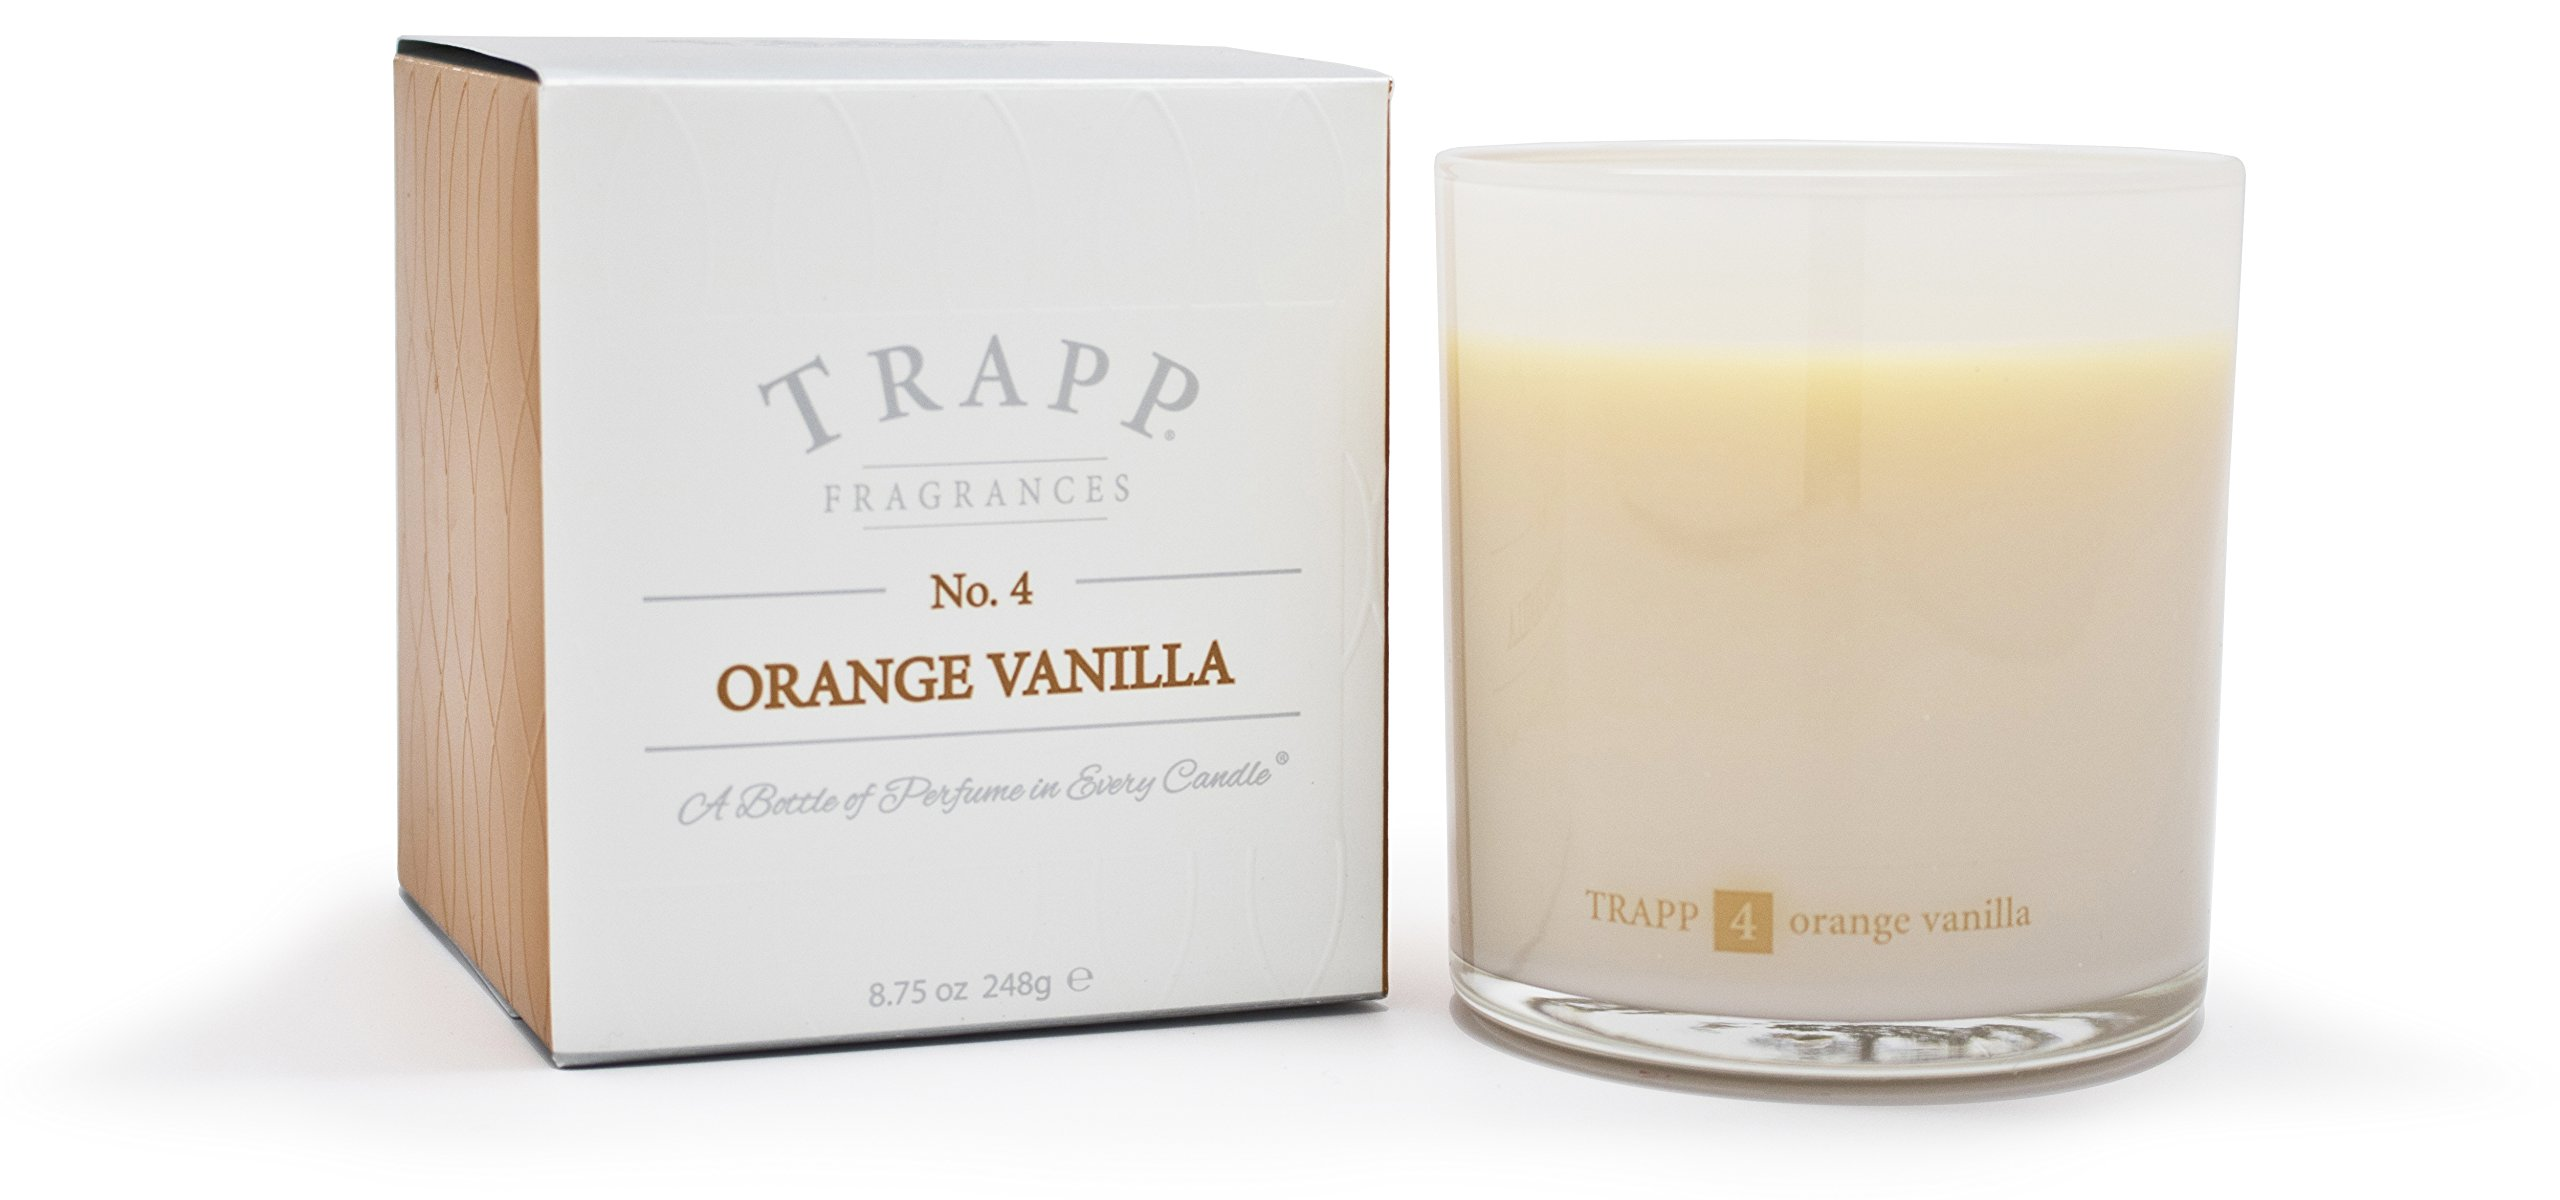 Trapp Ambiance Collection No. 4 Orange Vanilla Poured Scented Candle, 8.75 Ounces - Trapp poured candles are versatile, classic and fit beautifully into any decor. They fill a room with aromatic fragrance and create the perfect ambiance you desire. No. 4 Orange Vanilla - 8.75oz Trapp Scented Candle: The perfect combination of crisp orange notes elevated by the exquisite addition of Tahitian vanilla. SCENT NOTES: Brazilian Orange | Tahitian Vanilla - living-room-decor, living-room, candles - 718MnyFOOSL -